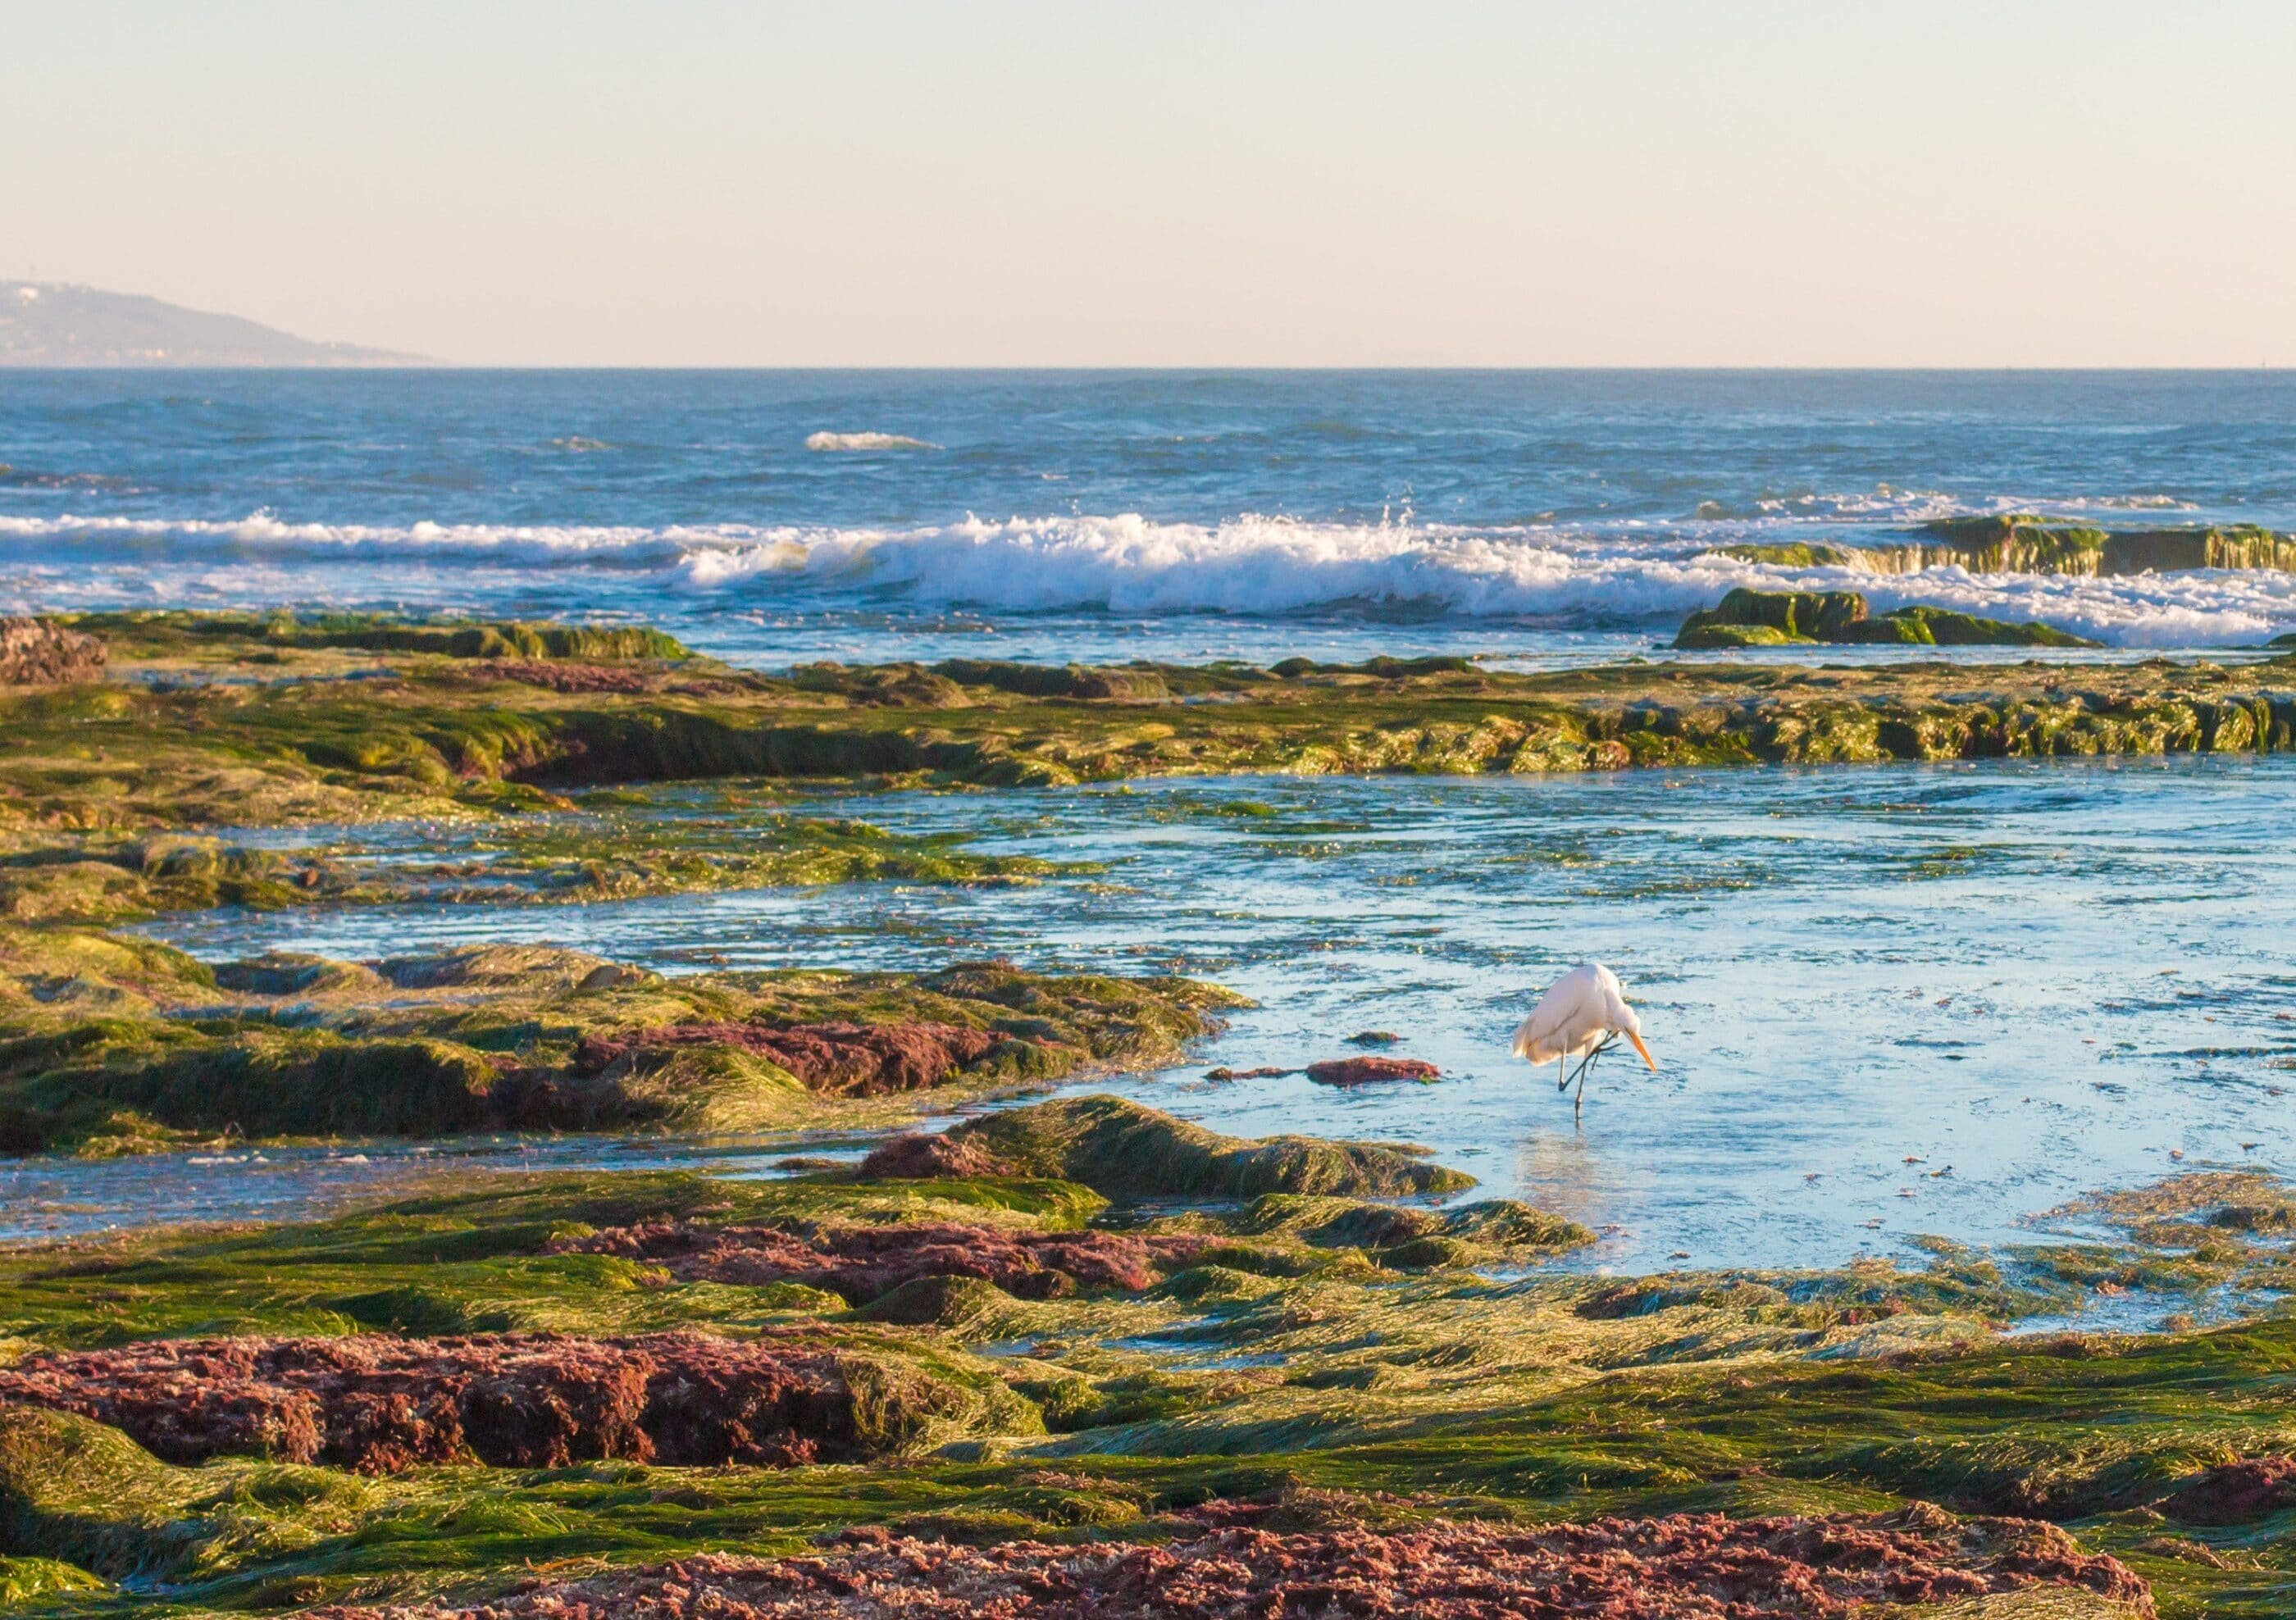 A crane hunts for fish in La Jolla tide pools during November.